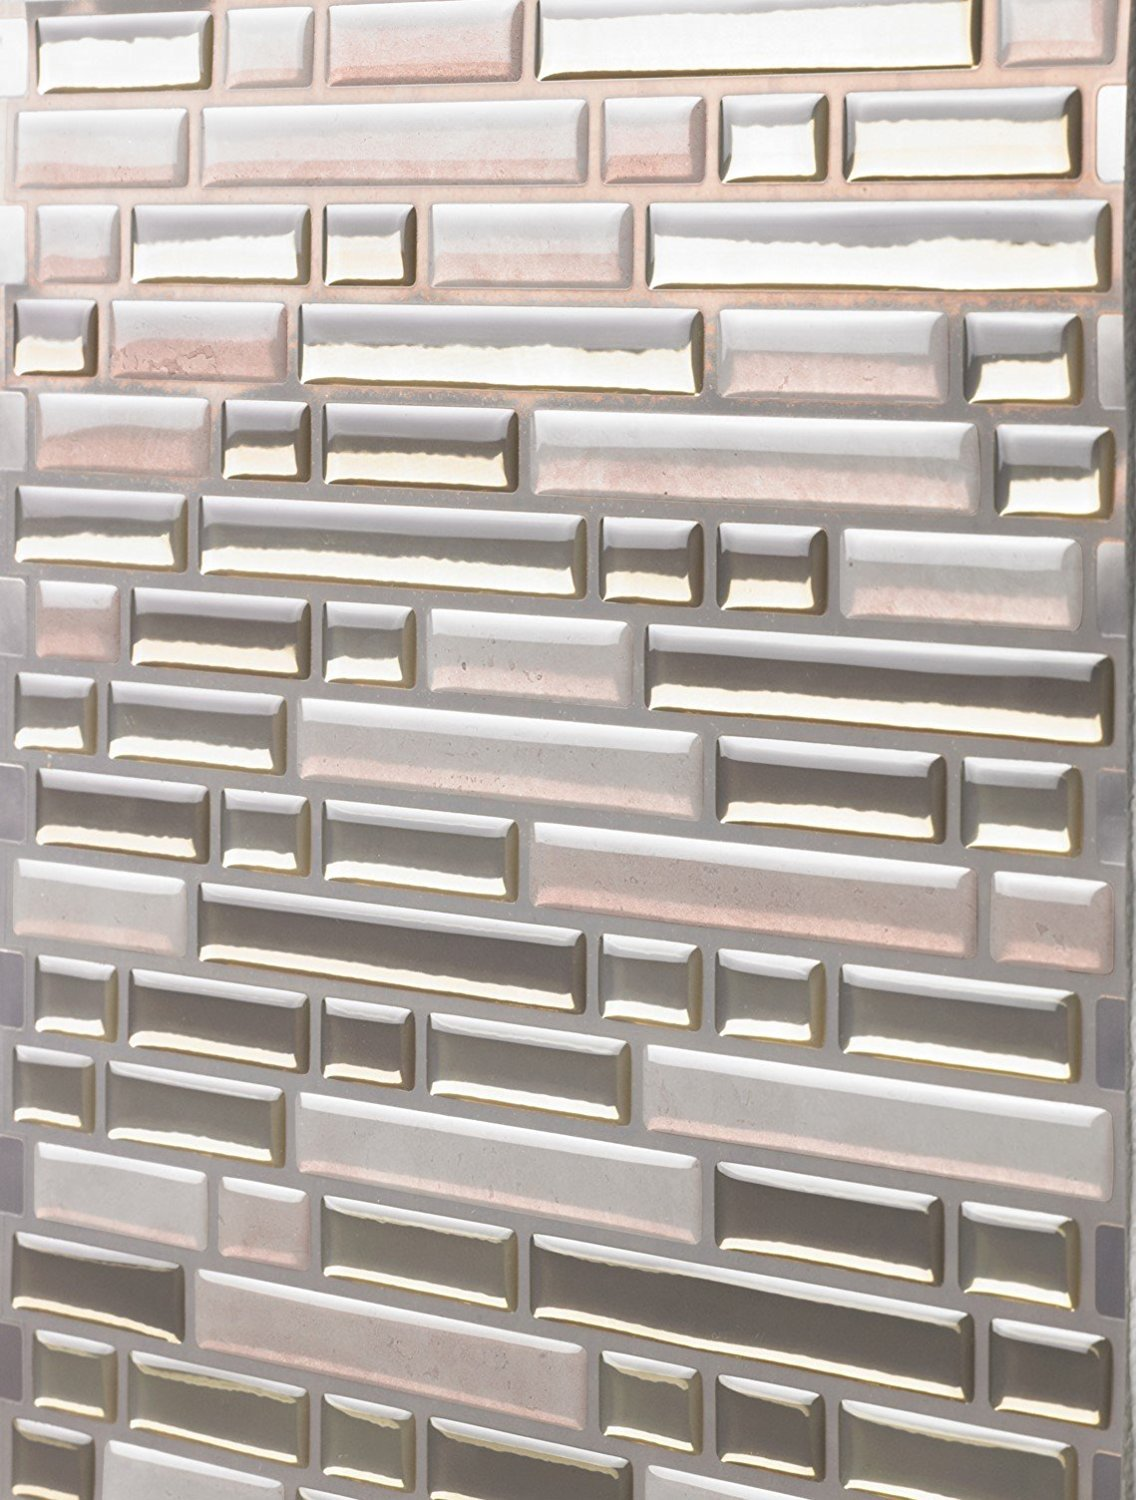 Tic Tac Tiles Anti-Mold Peel and Stick Wall Tile in Como Sand AH-BRS02 10 Tiles